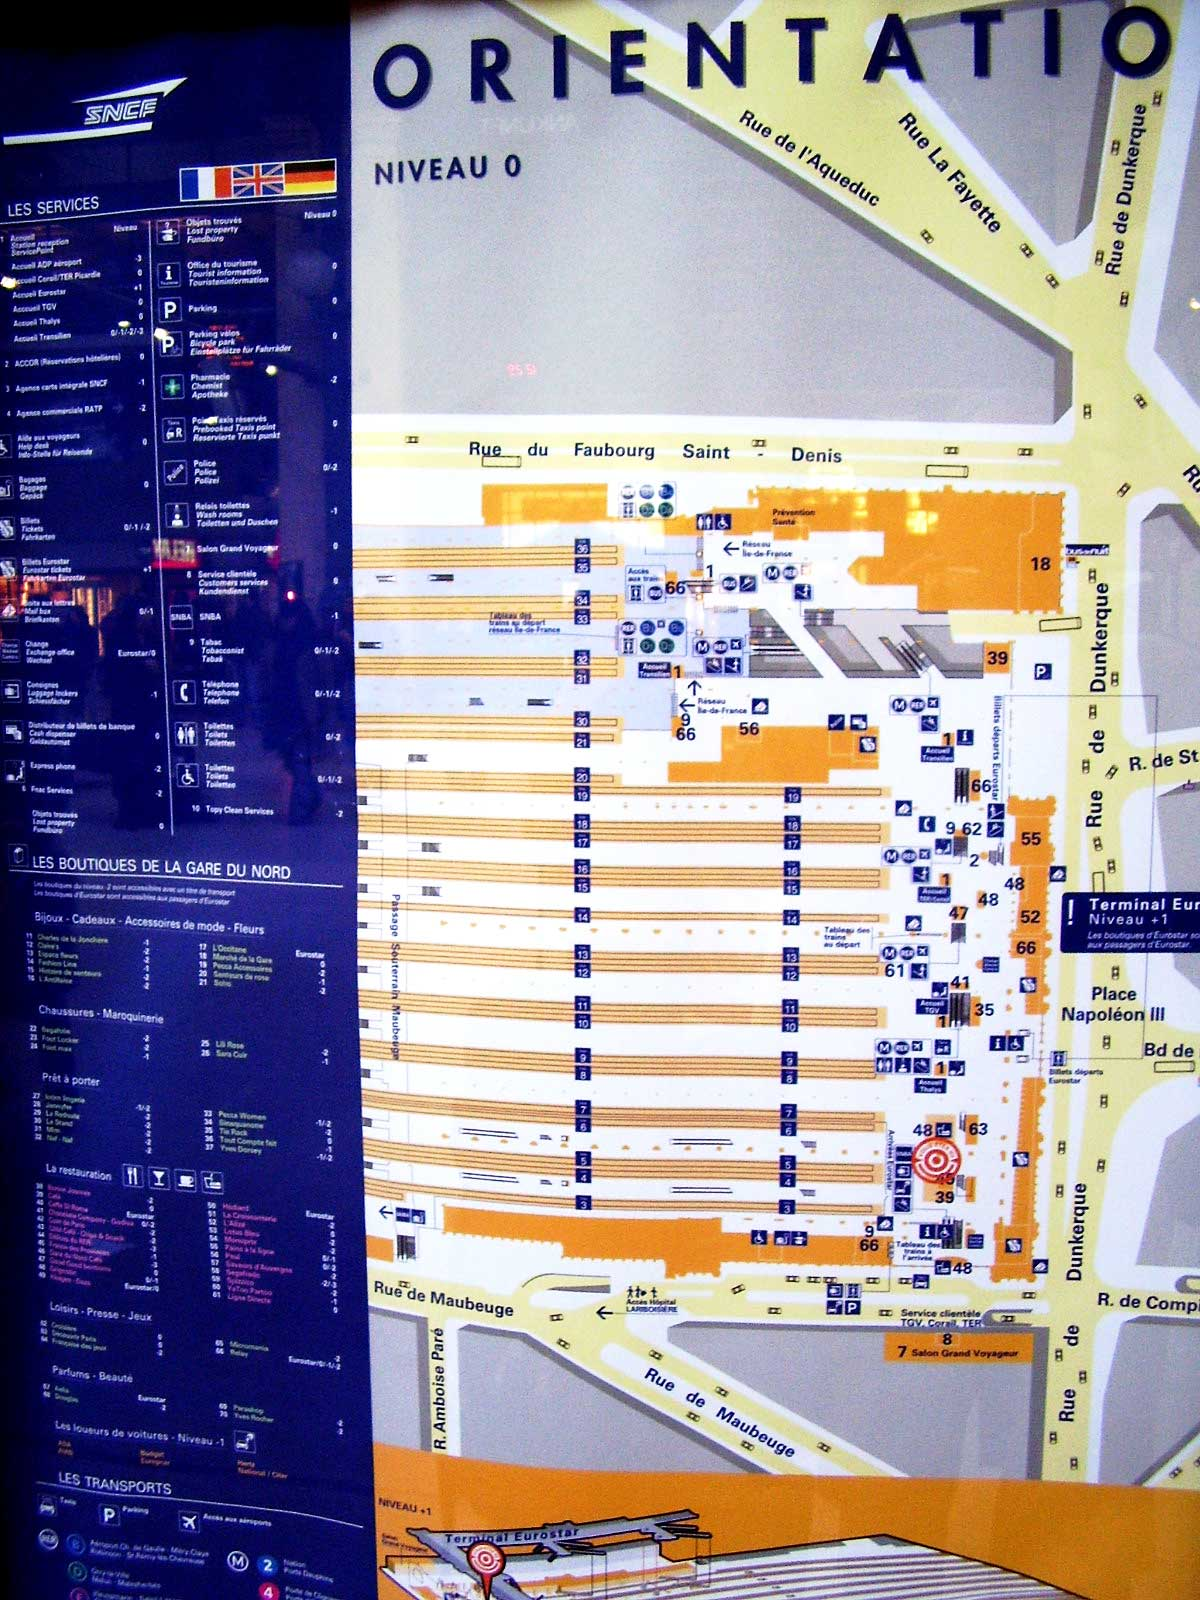 Orientation plan for Gare du Nord train station in Paris, France. http://www.enjoy-europe.com/hte/chap17/p1020028full.jpg